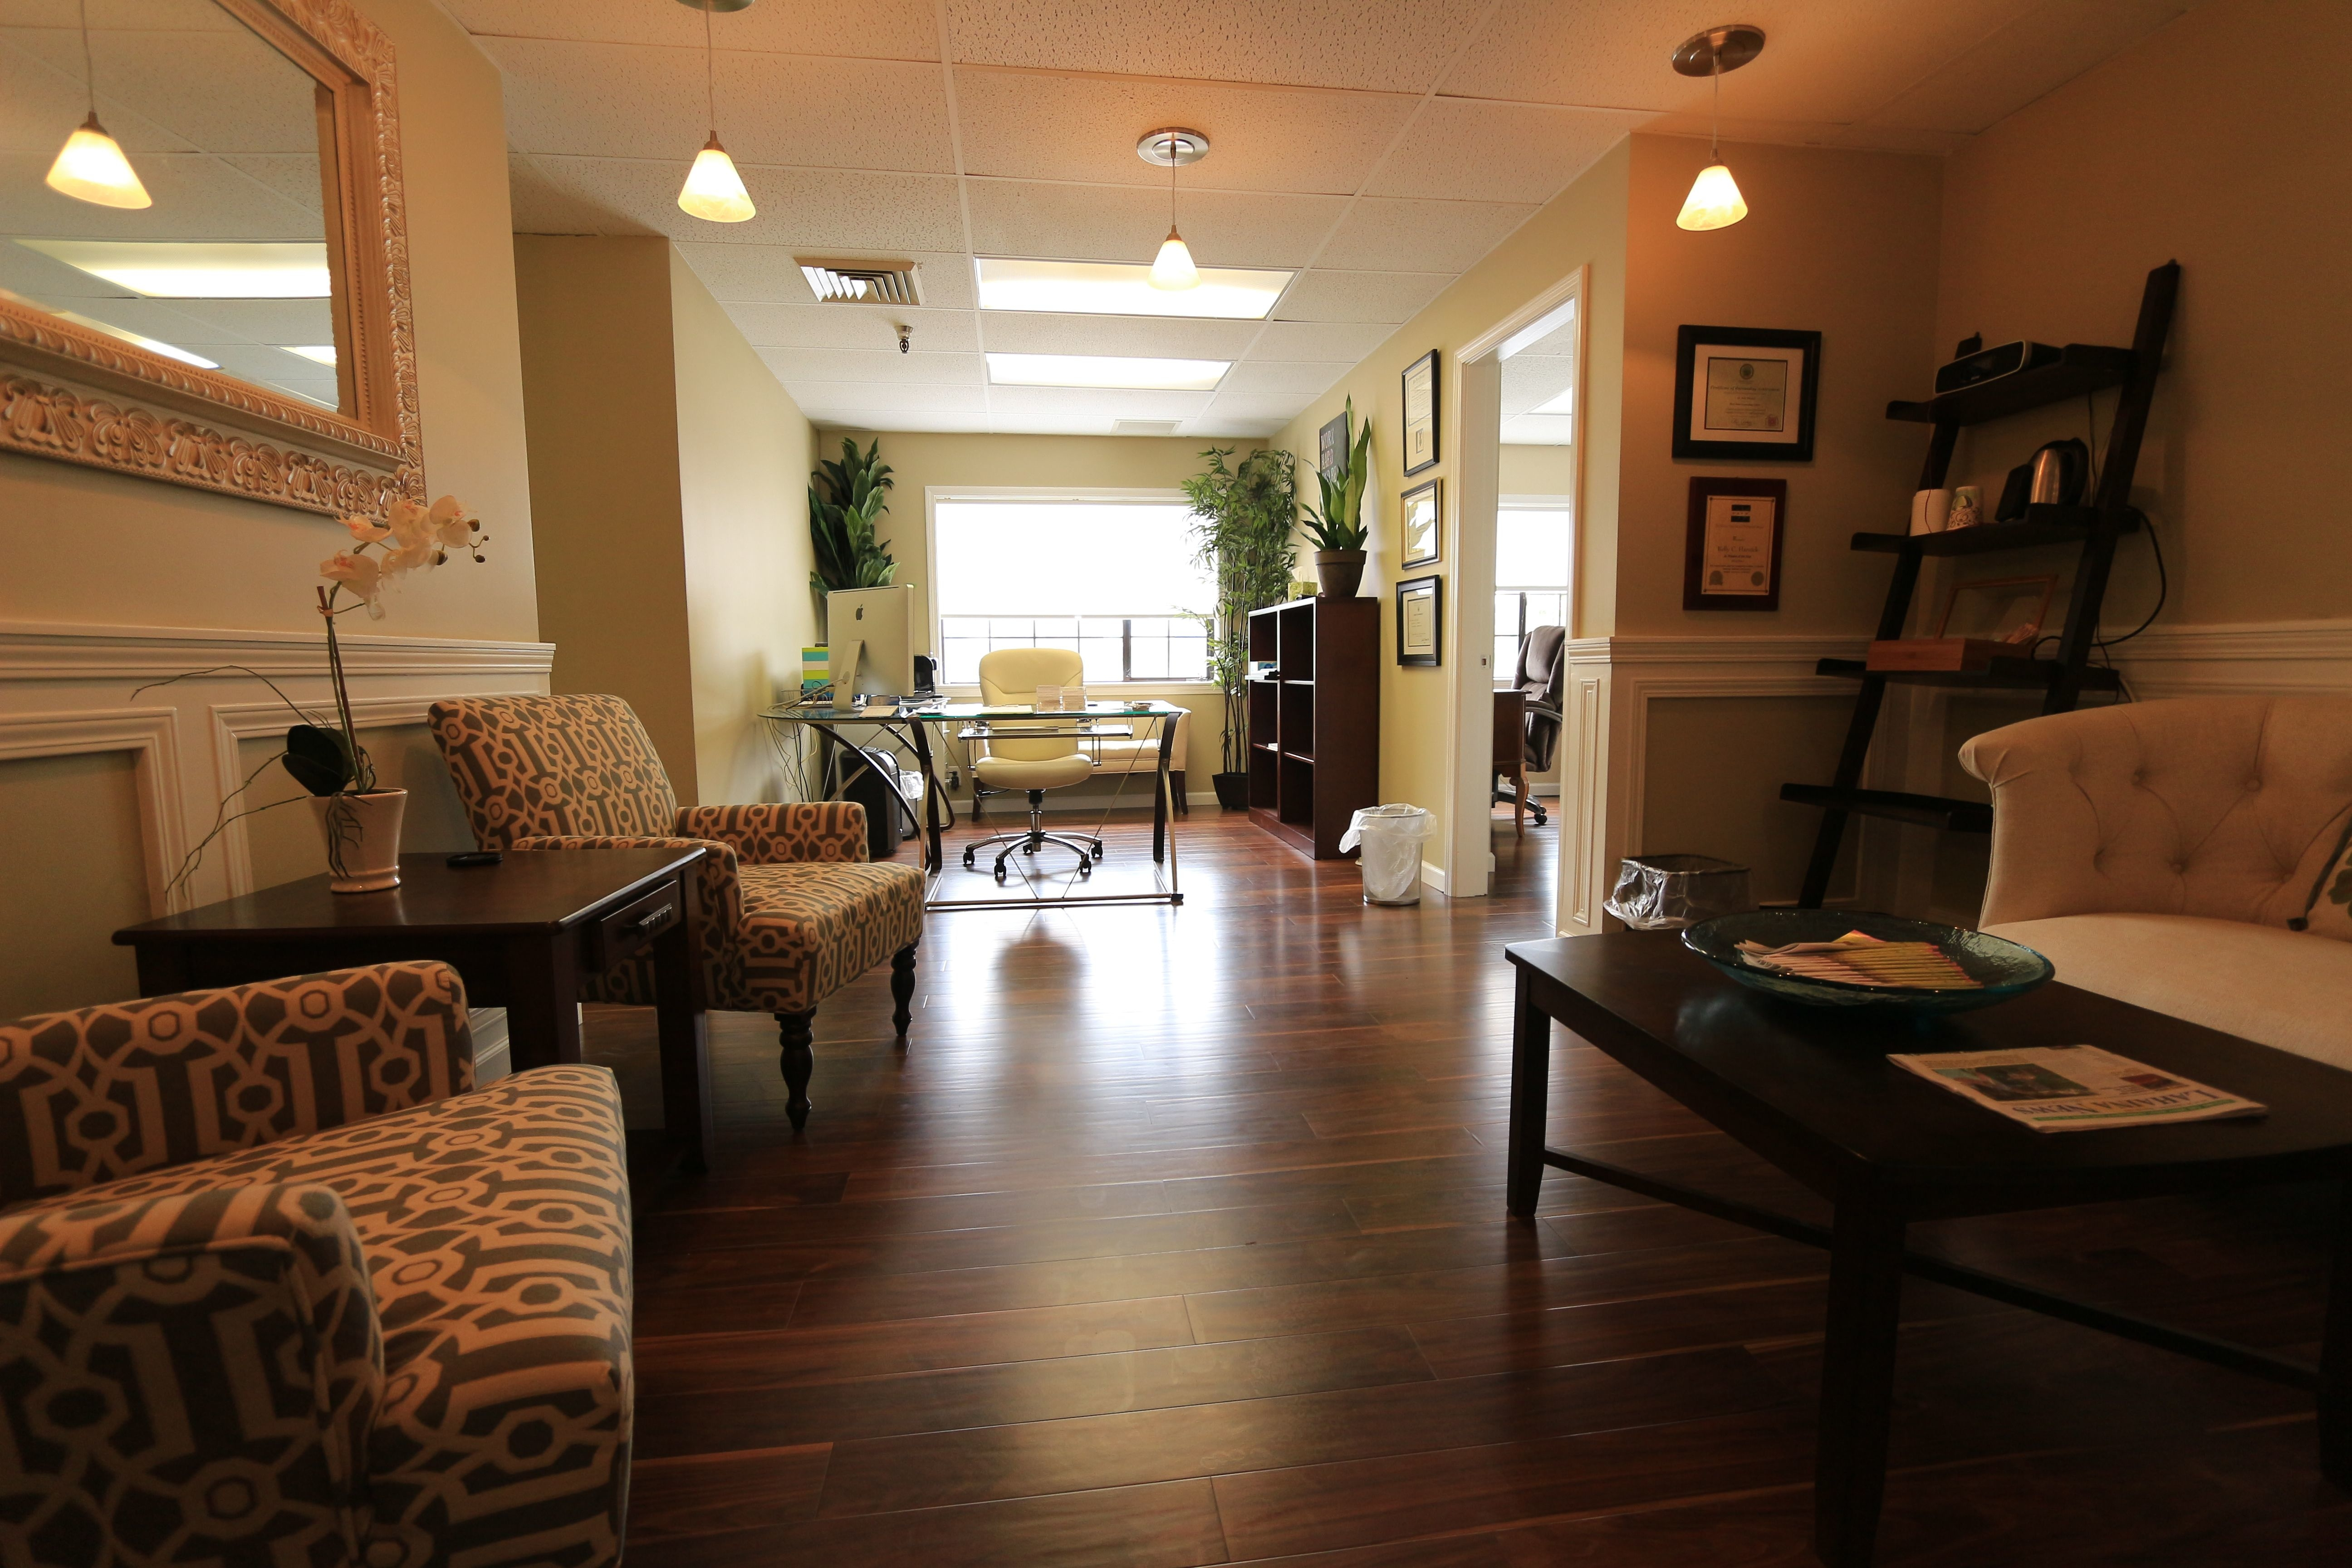 West maui counseling center in lahaina hi 808 280 4 for The family room psychological services